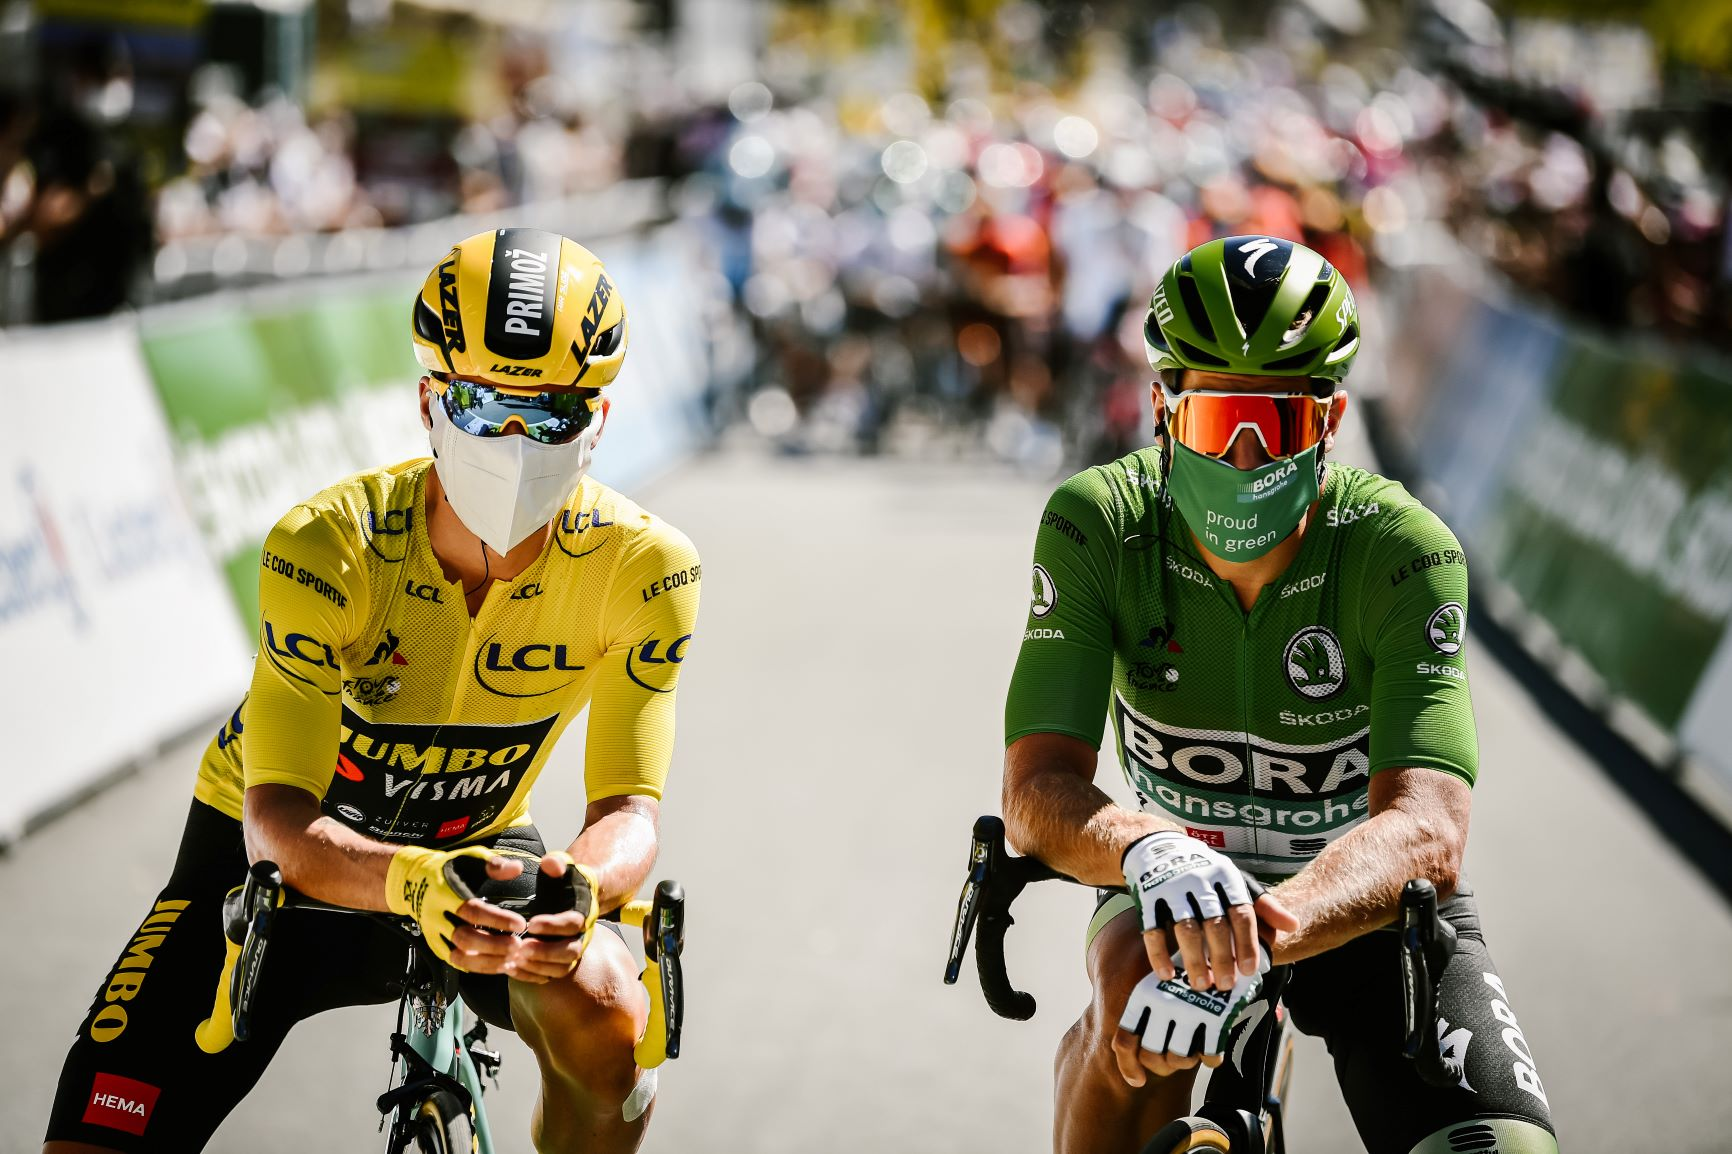 Tour de France peloton clears first COVID-19 hurdle